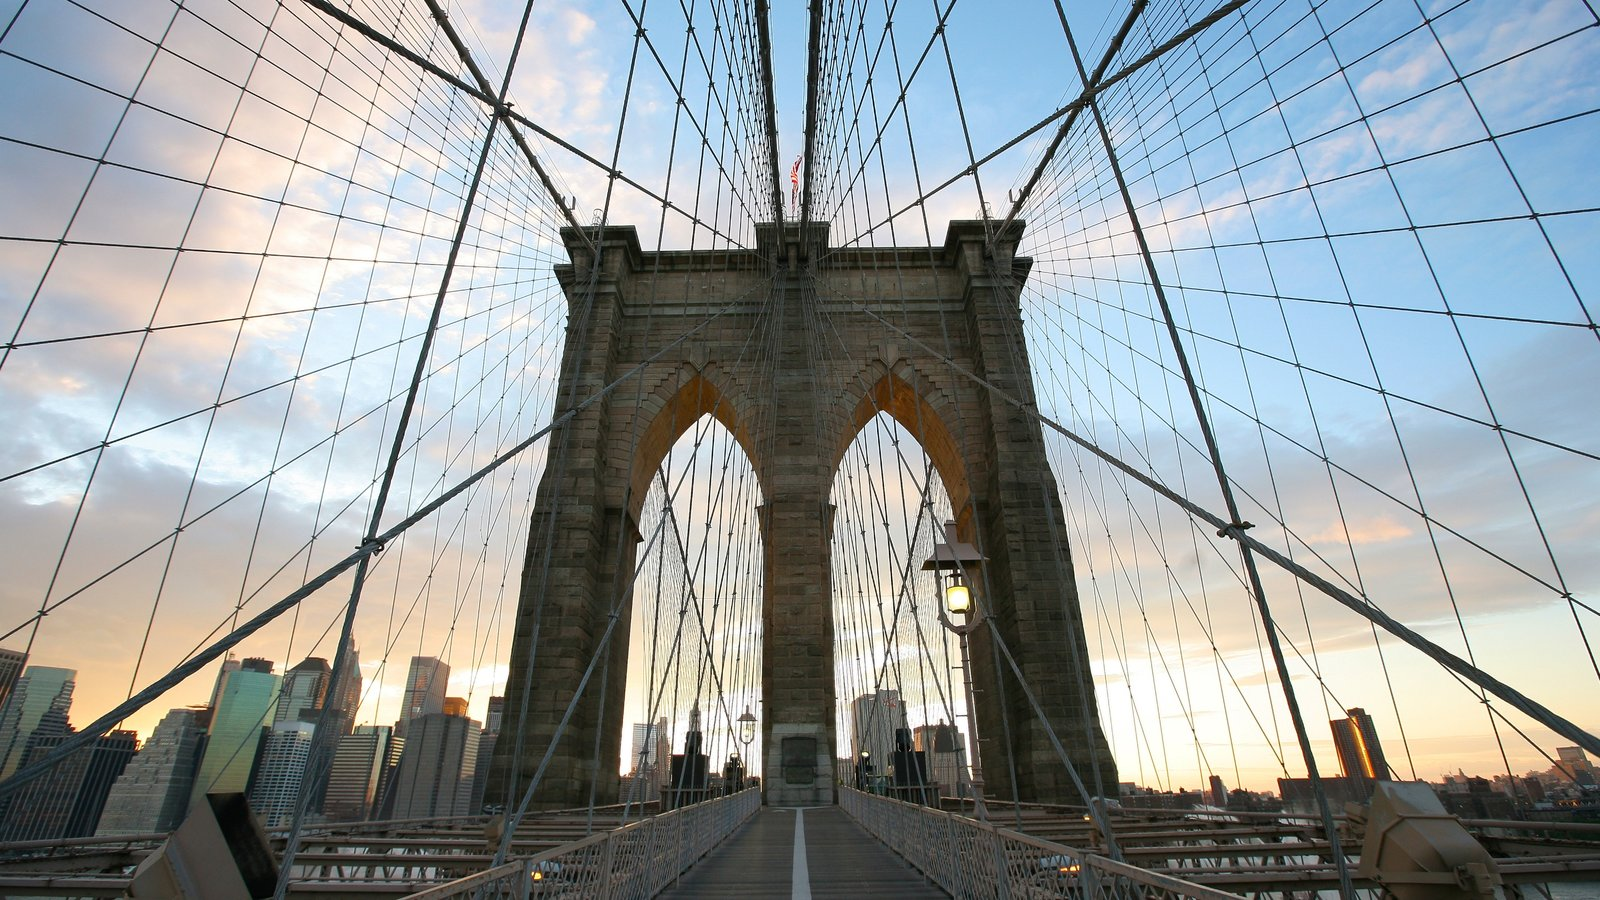 Historical pictures view images of brooklyn bridge brooklyn bridge which includes heritage architecture a city and a bridge malvernweather Images